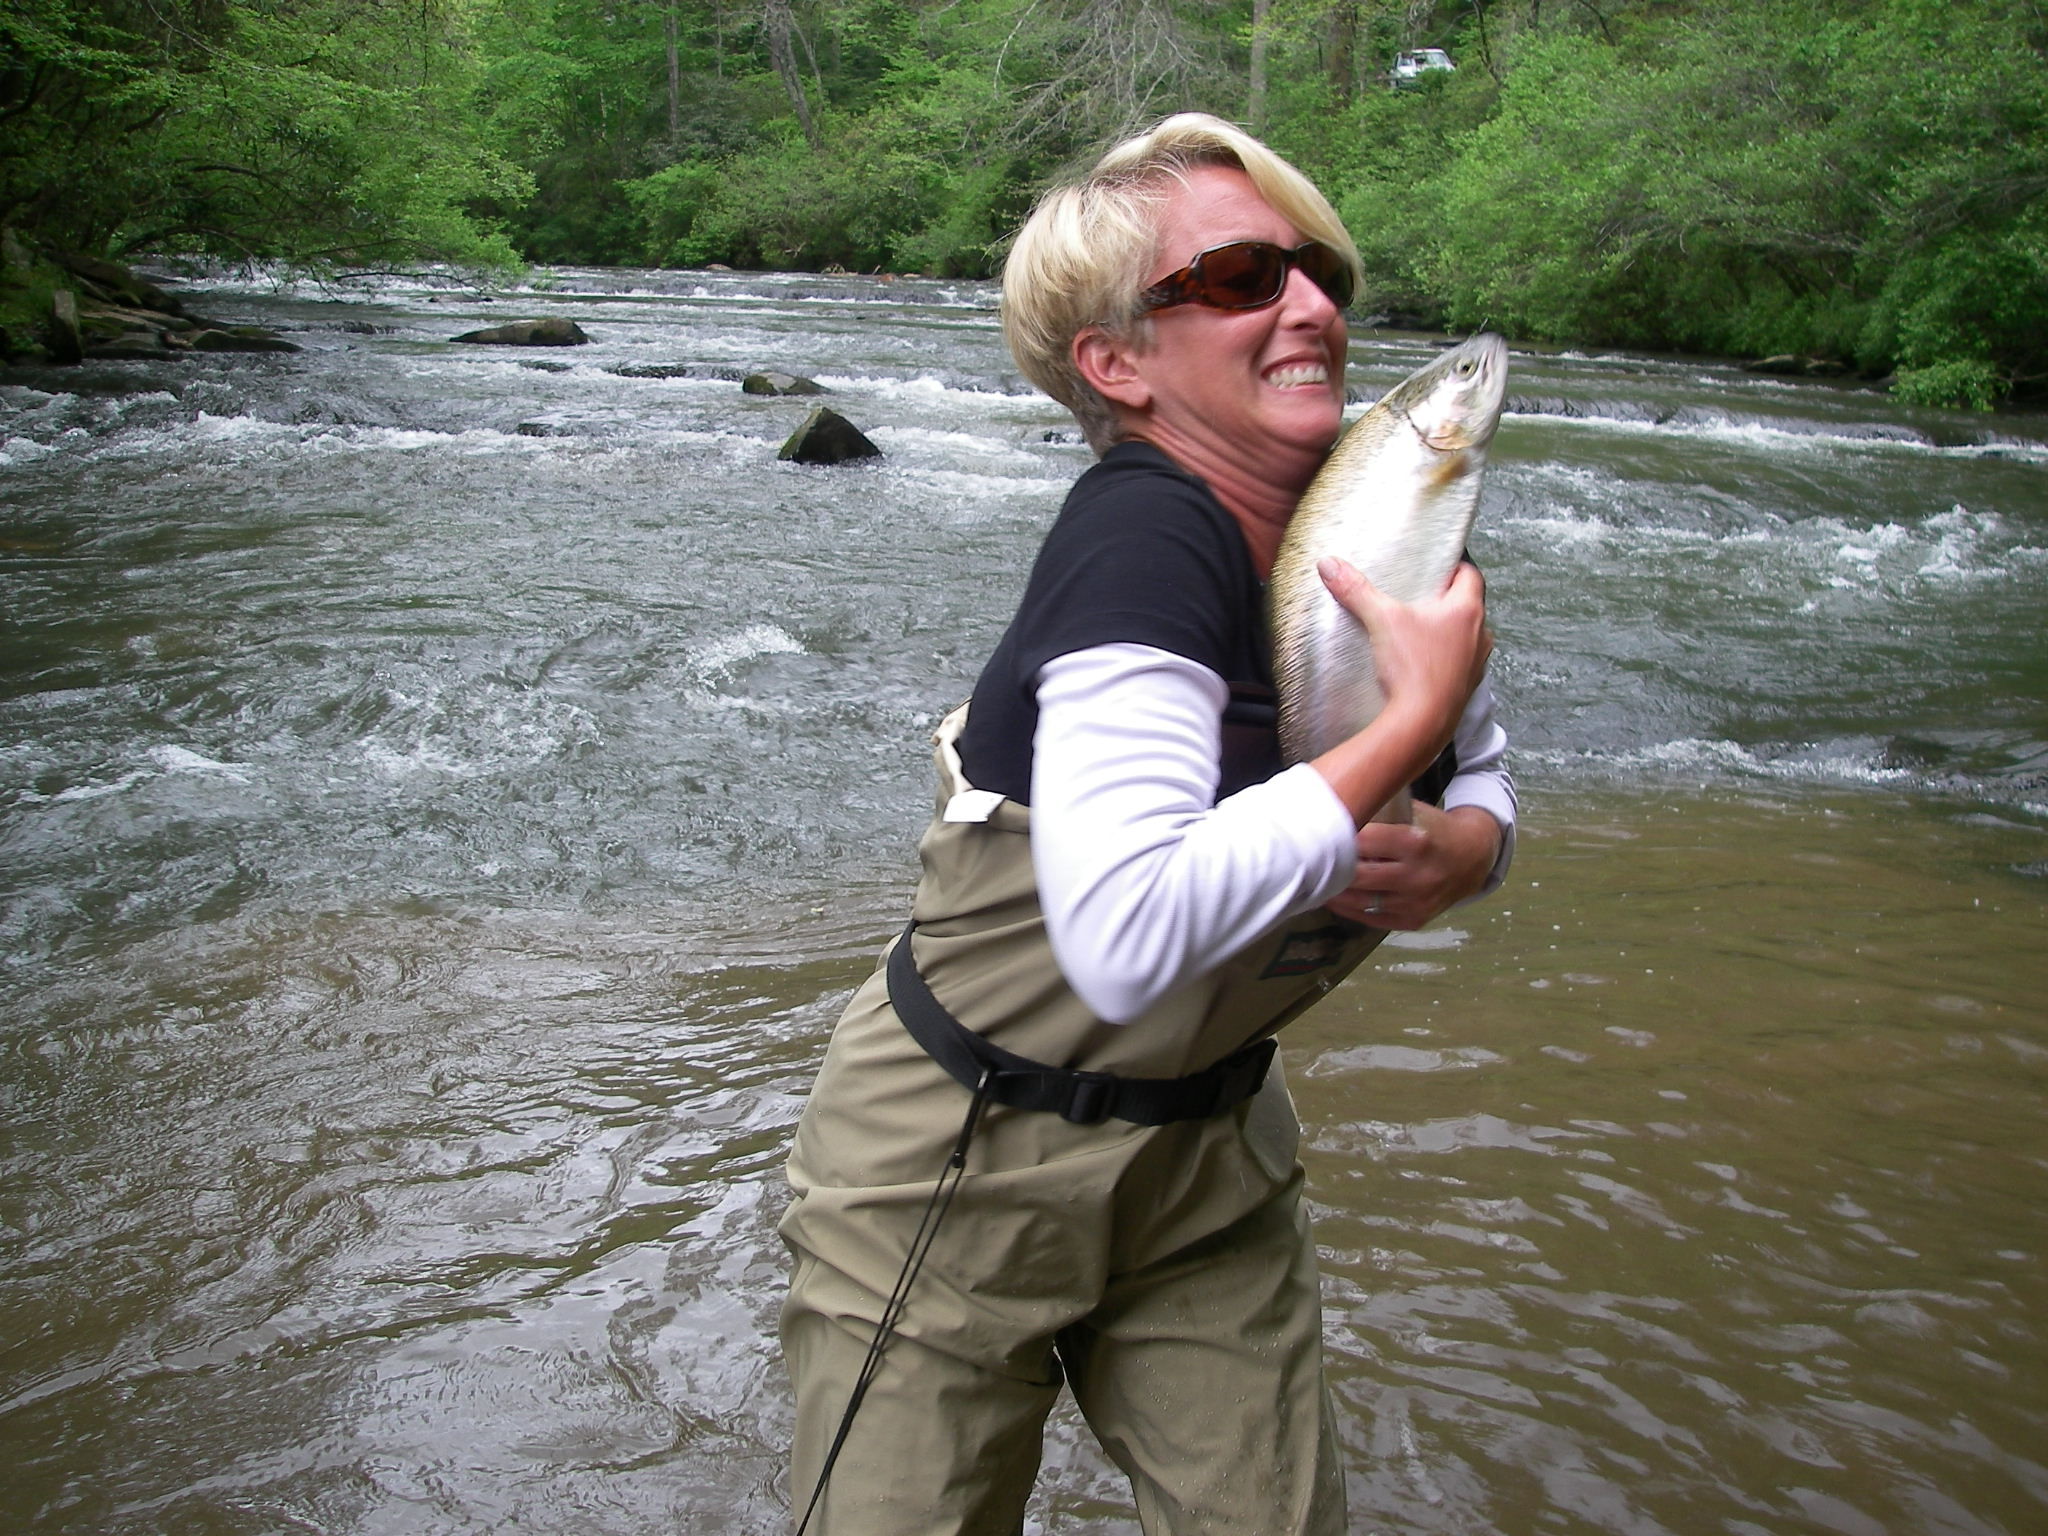 North georgia wade fishing trips reel 39 em in guide service for Fly fishing north georgia